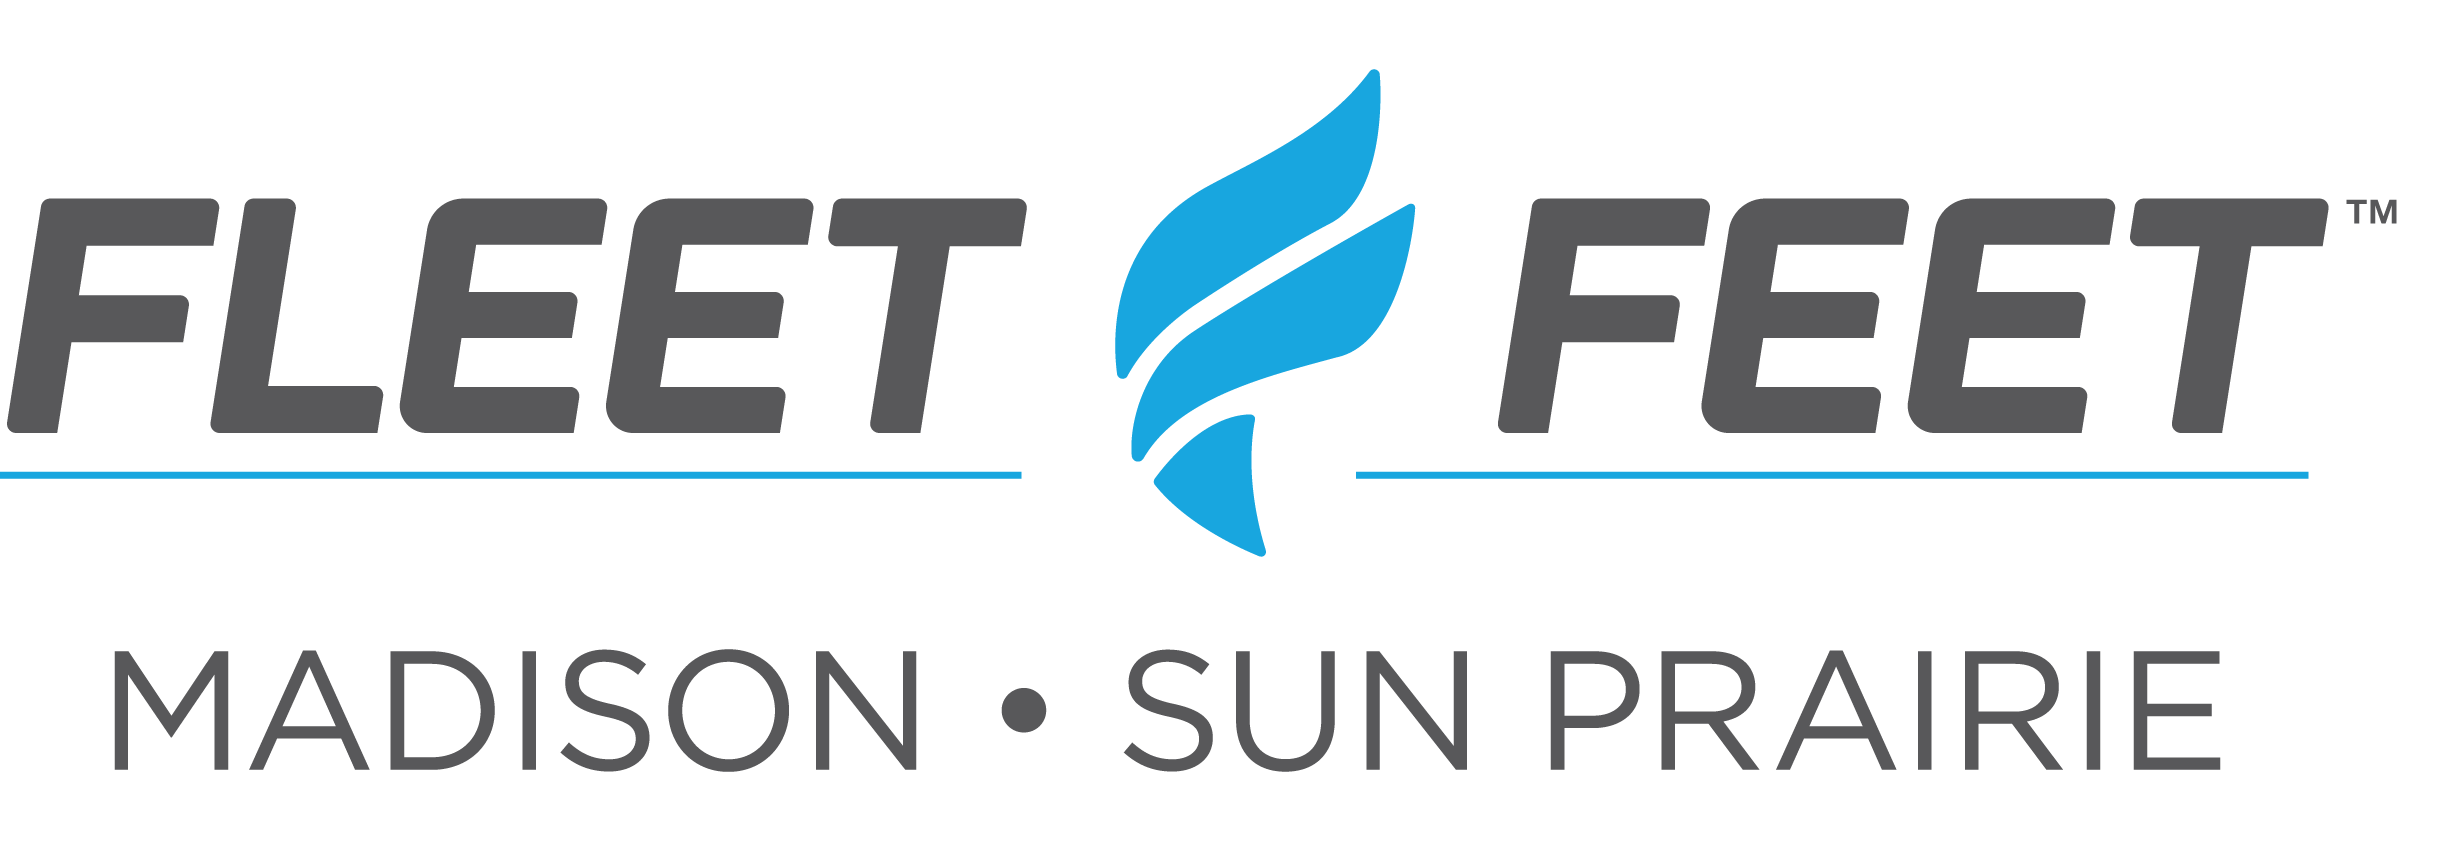 FF_City_Logos_Madison_Sun_Prairie.png